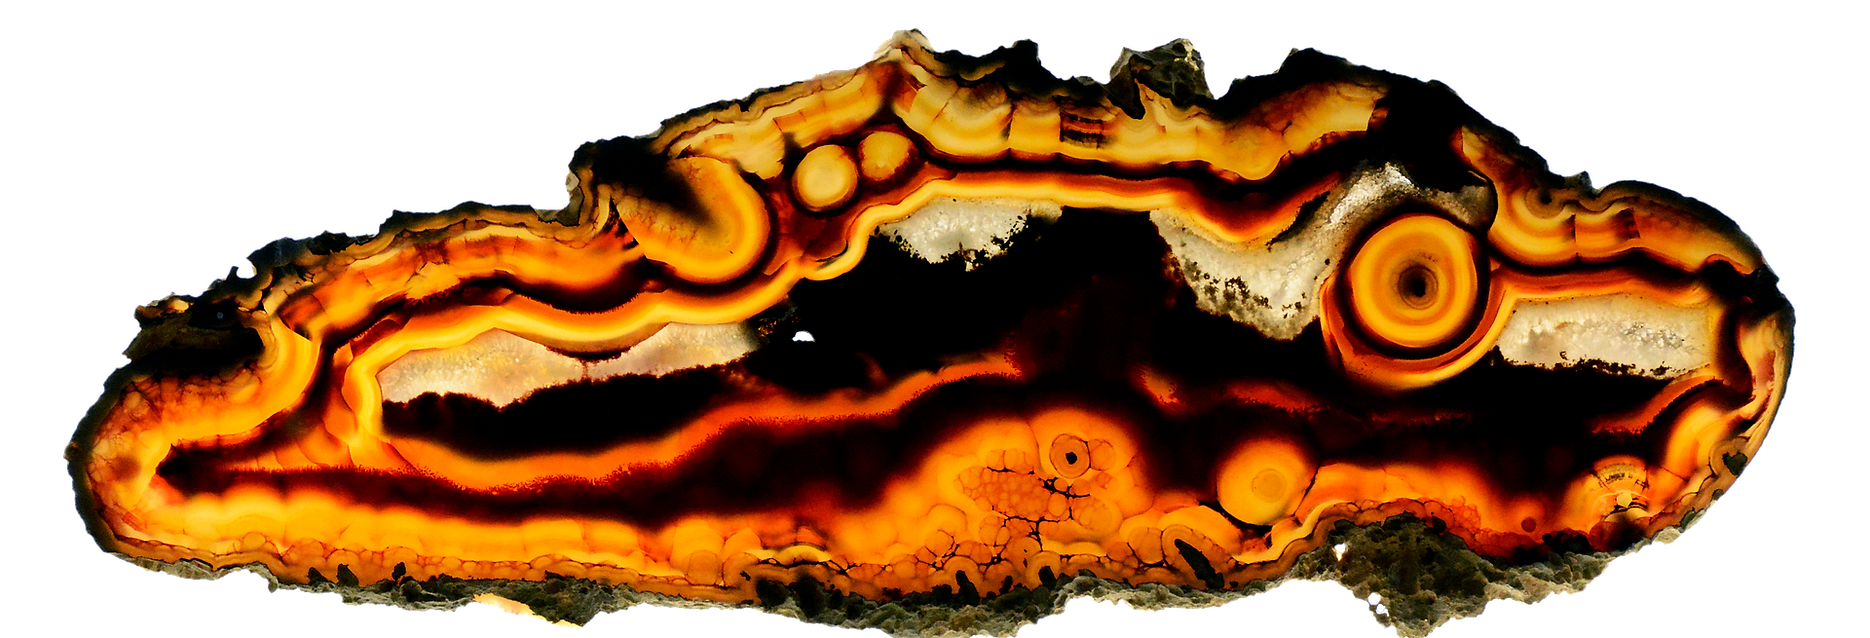 agate-1679751_1920.png